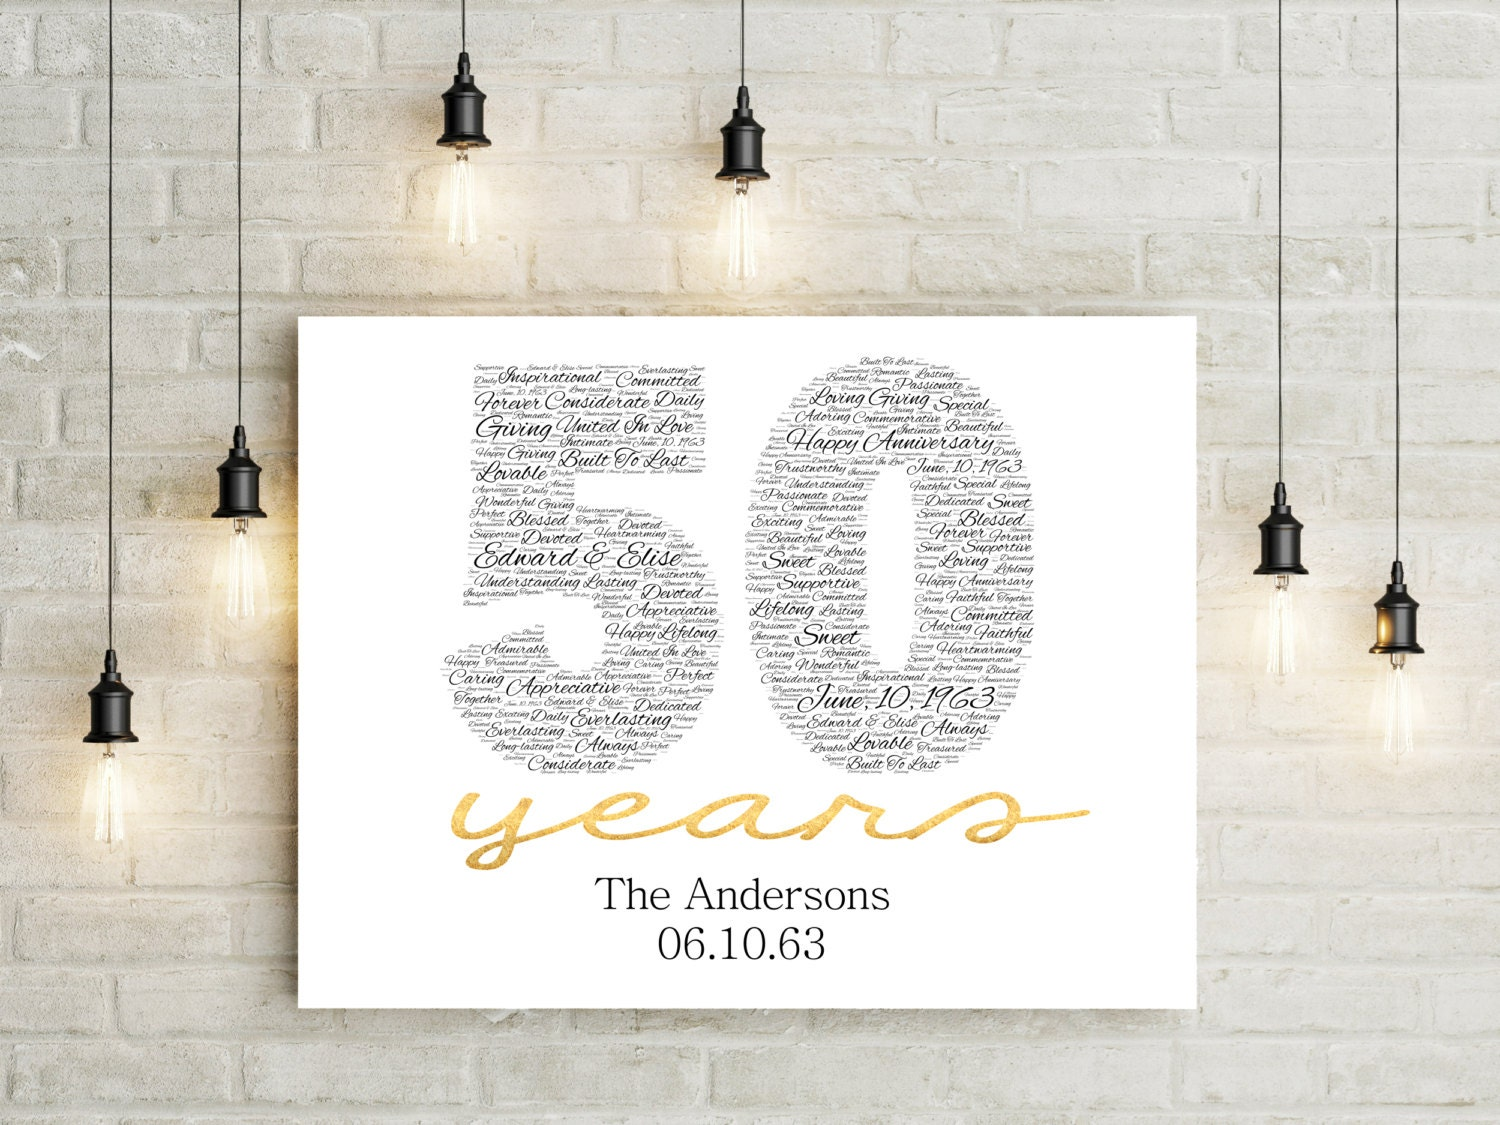 Gifts For Fiftieth Wedding Anniversary: 50th Anniversary Gift CANVAS Golden Wedding Anniversary Gift